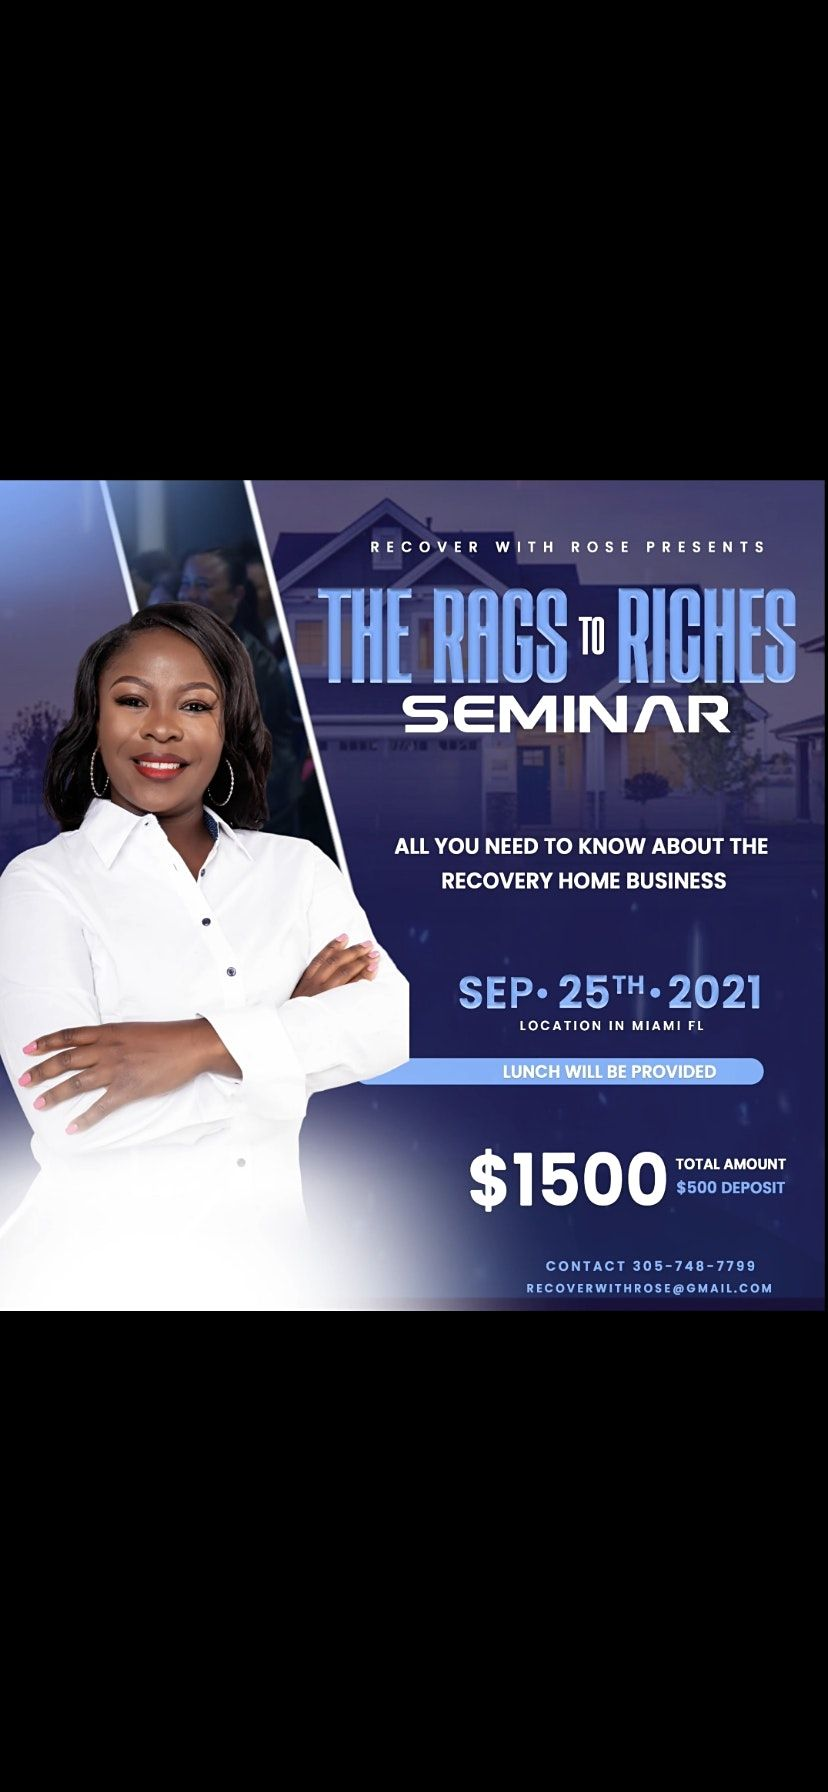 The Rags to Riches Seminar